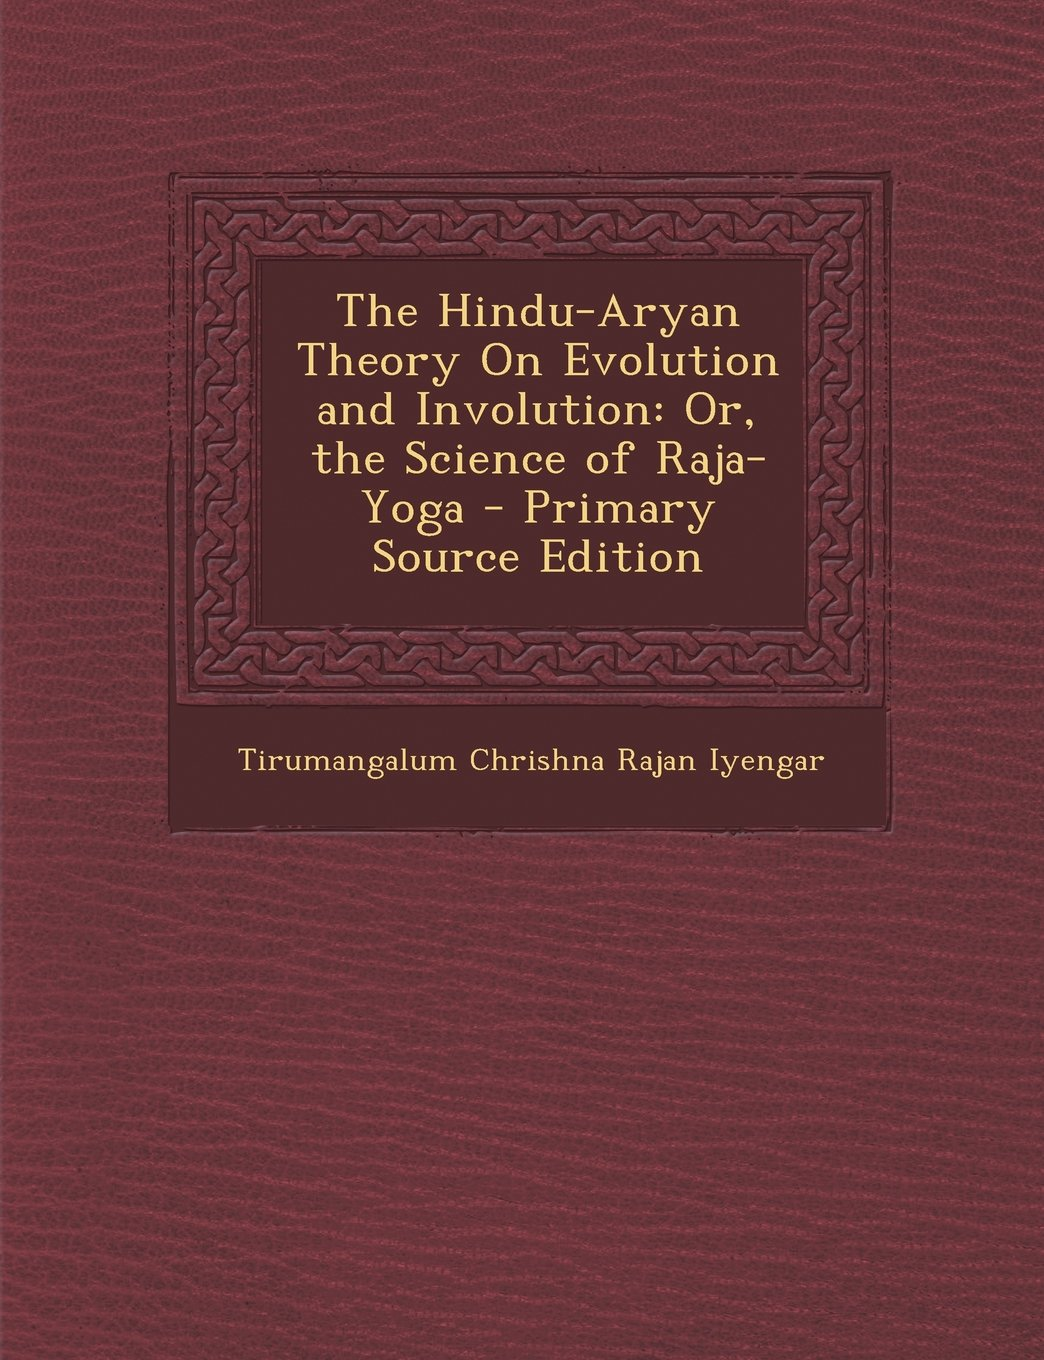 Download The Hindu-Aryan Theory On Evolution and Involution: Or, the Science of Raja-Yoga ebook